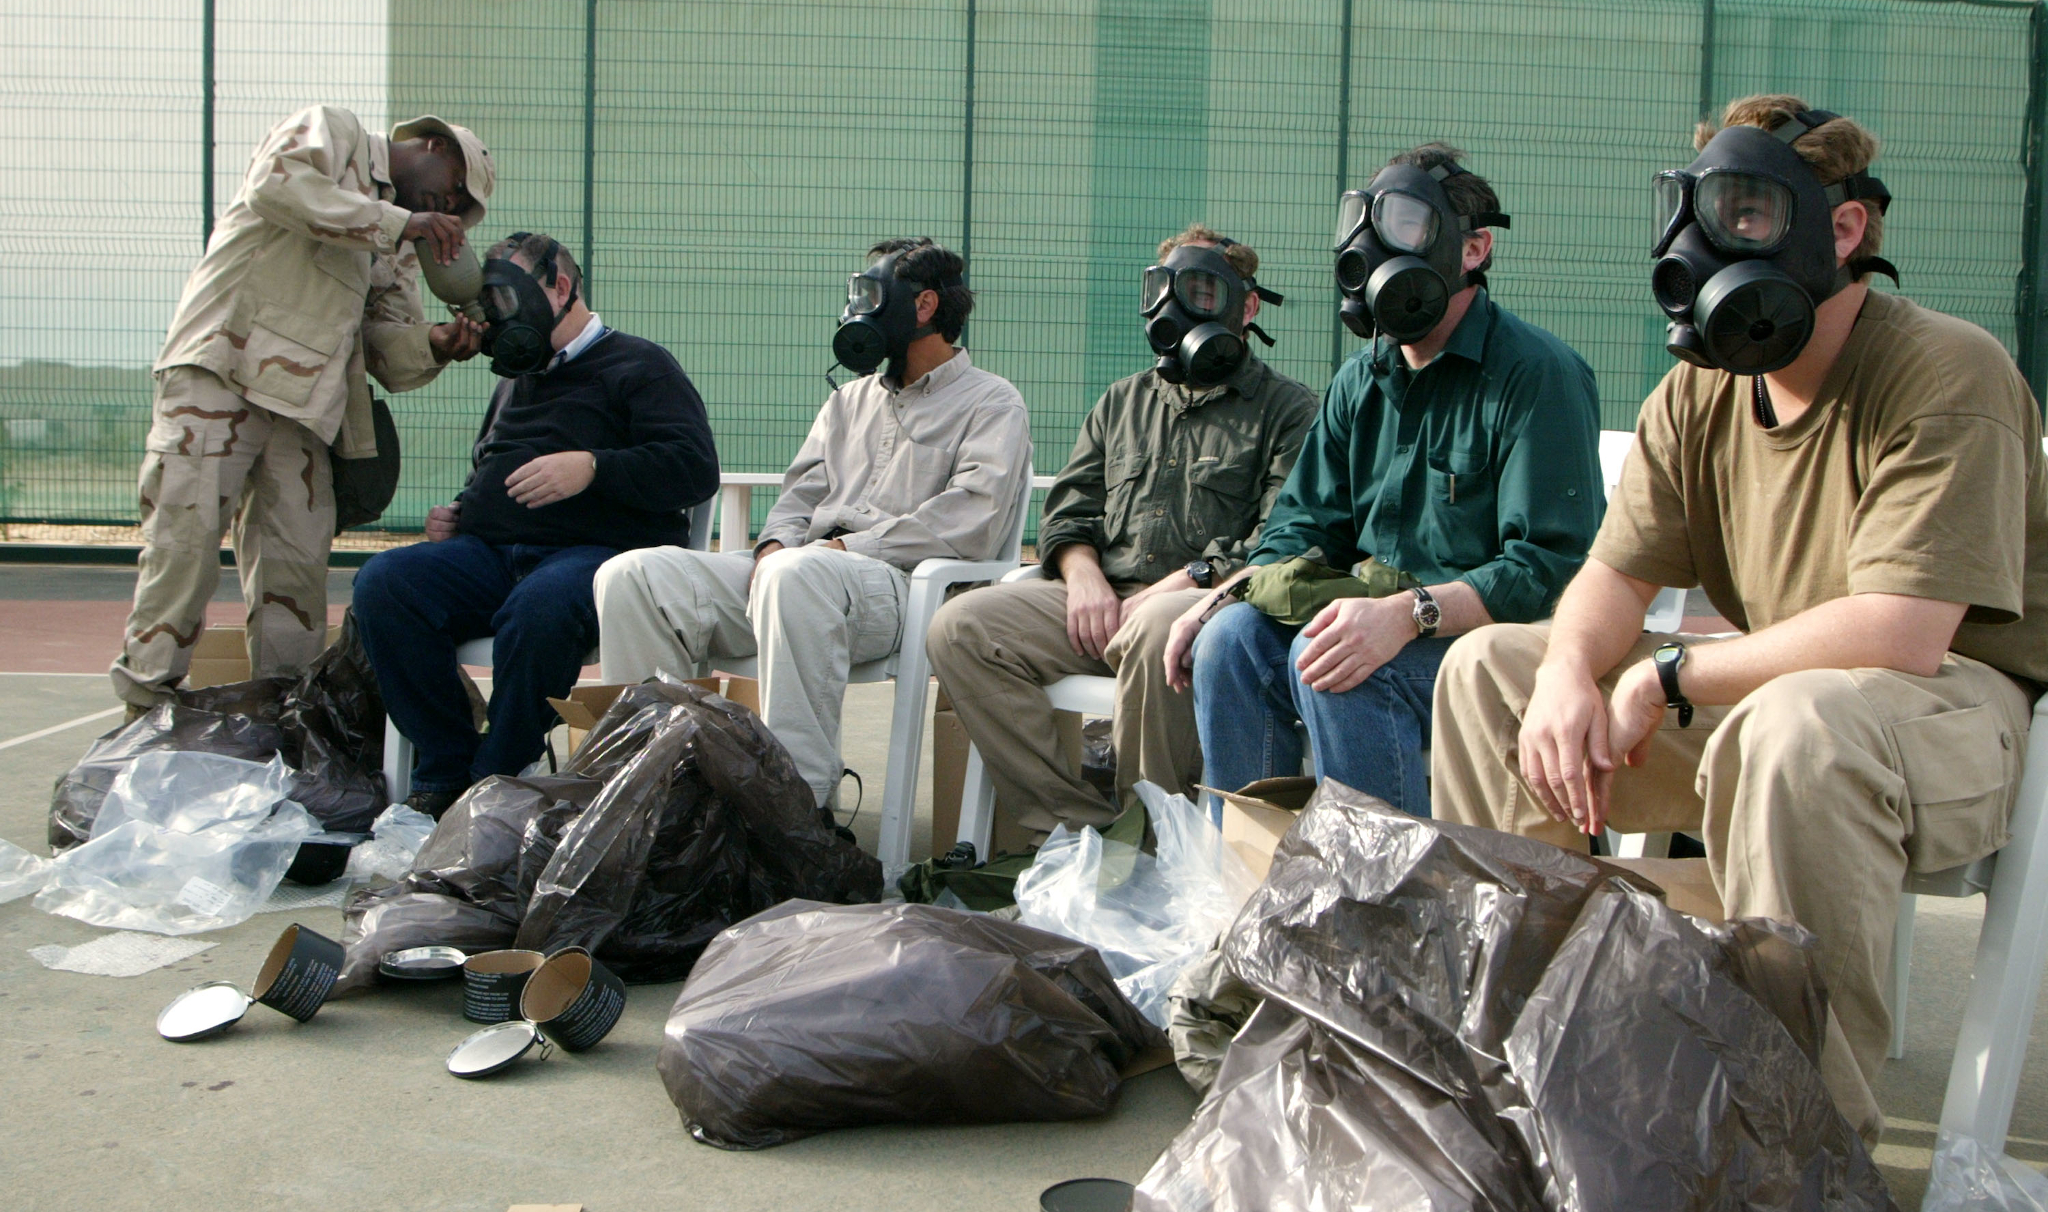 A soldier fits Western journalists with gas masks before the 2003 invasion of Iraq. More than 600 journalists were embedded in military units. (Photo: Joe Raedle / Getty)